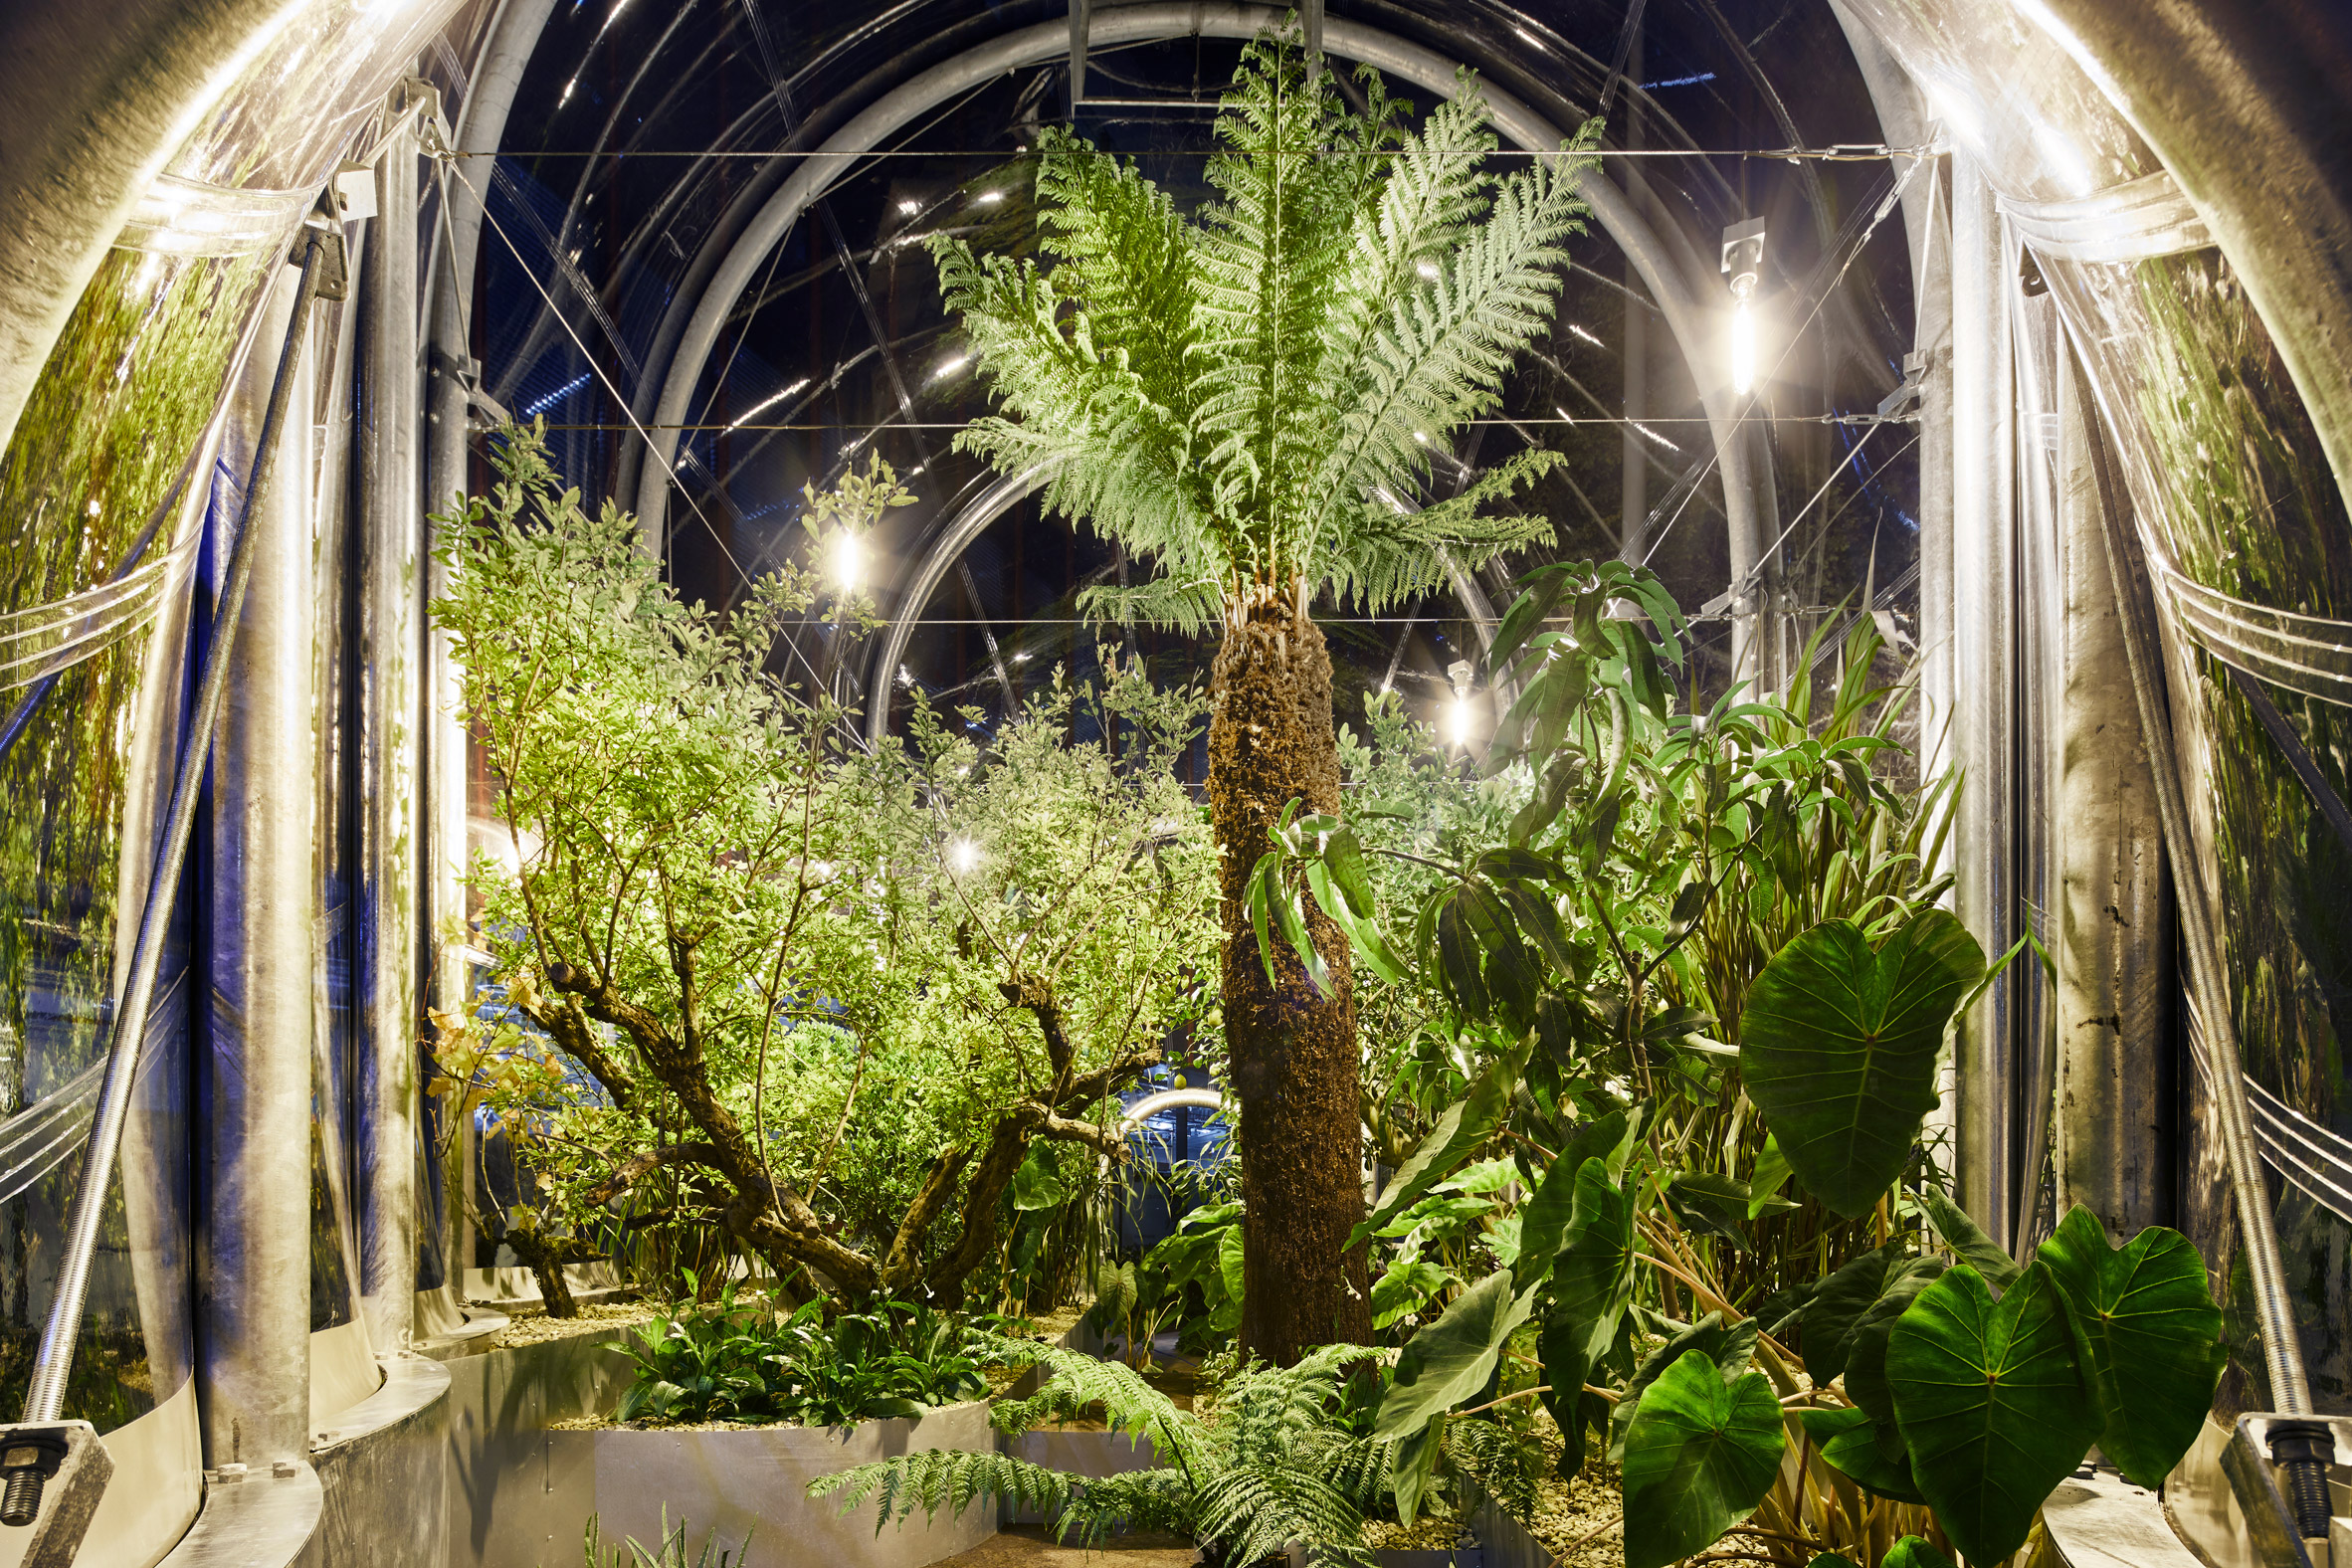 Hothouse by Studio Weave in Stratford as part of London Design Festival